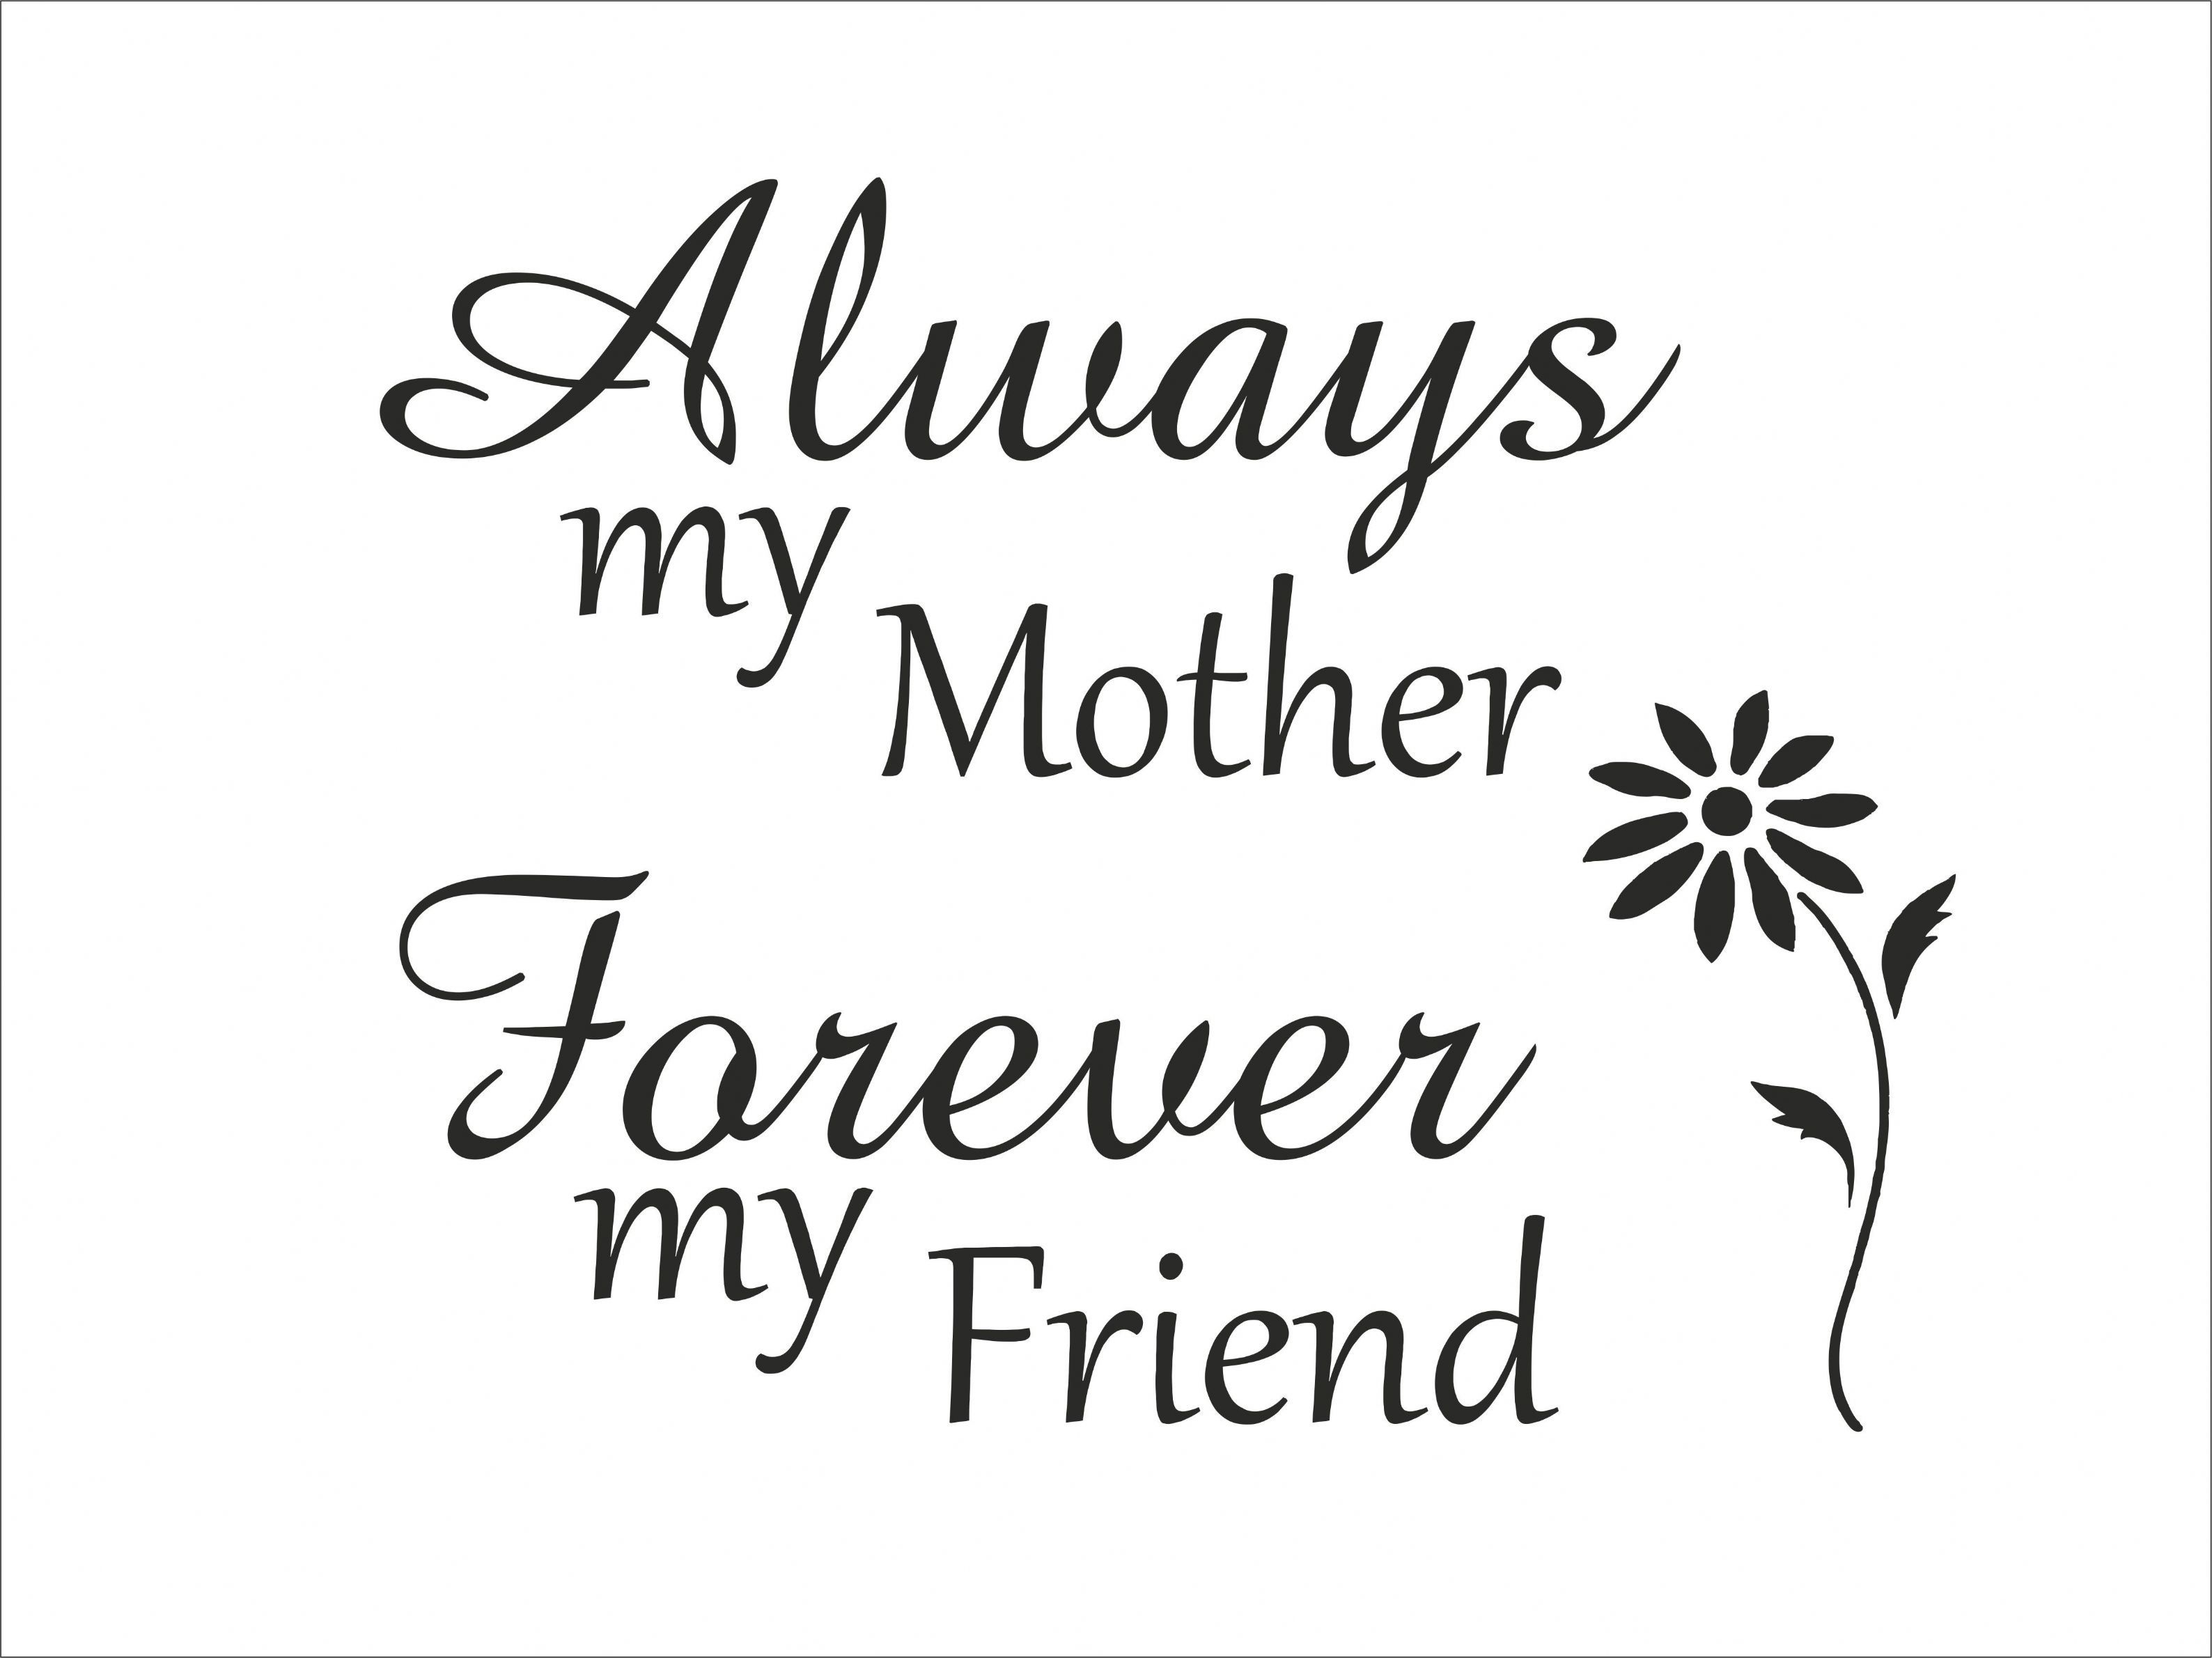 happy mother day quotes mother quotes mother daughter quotes mom quotes happy